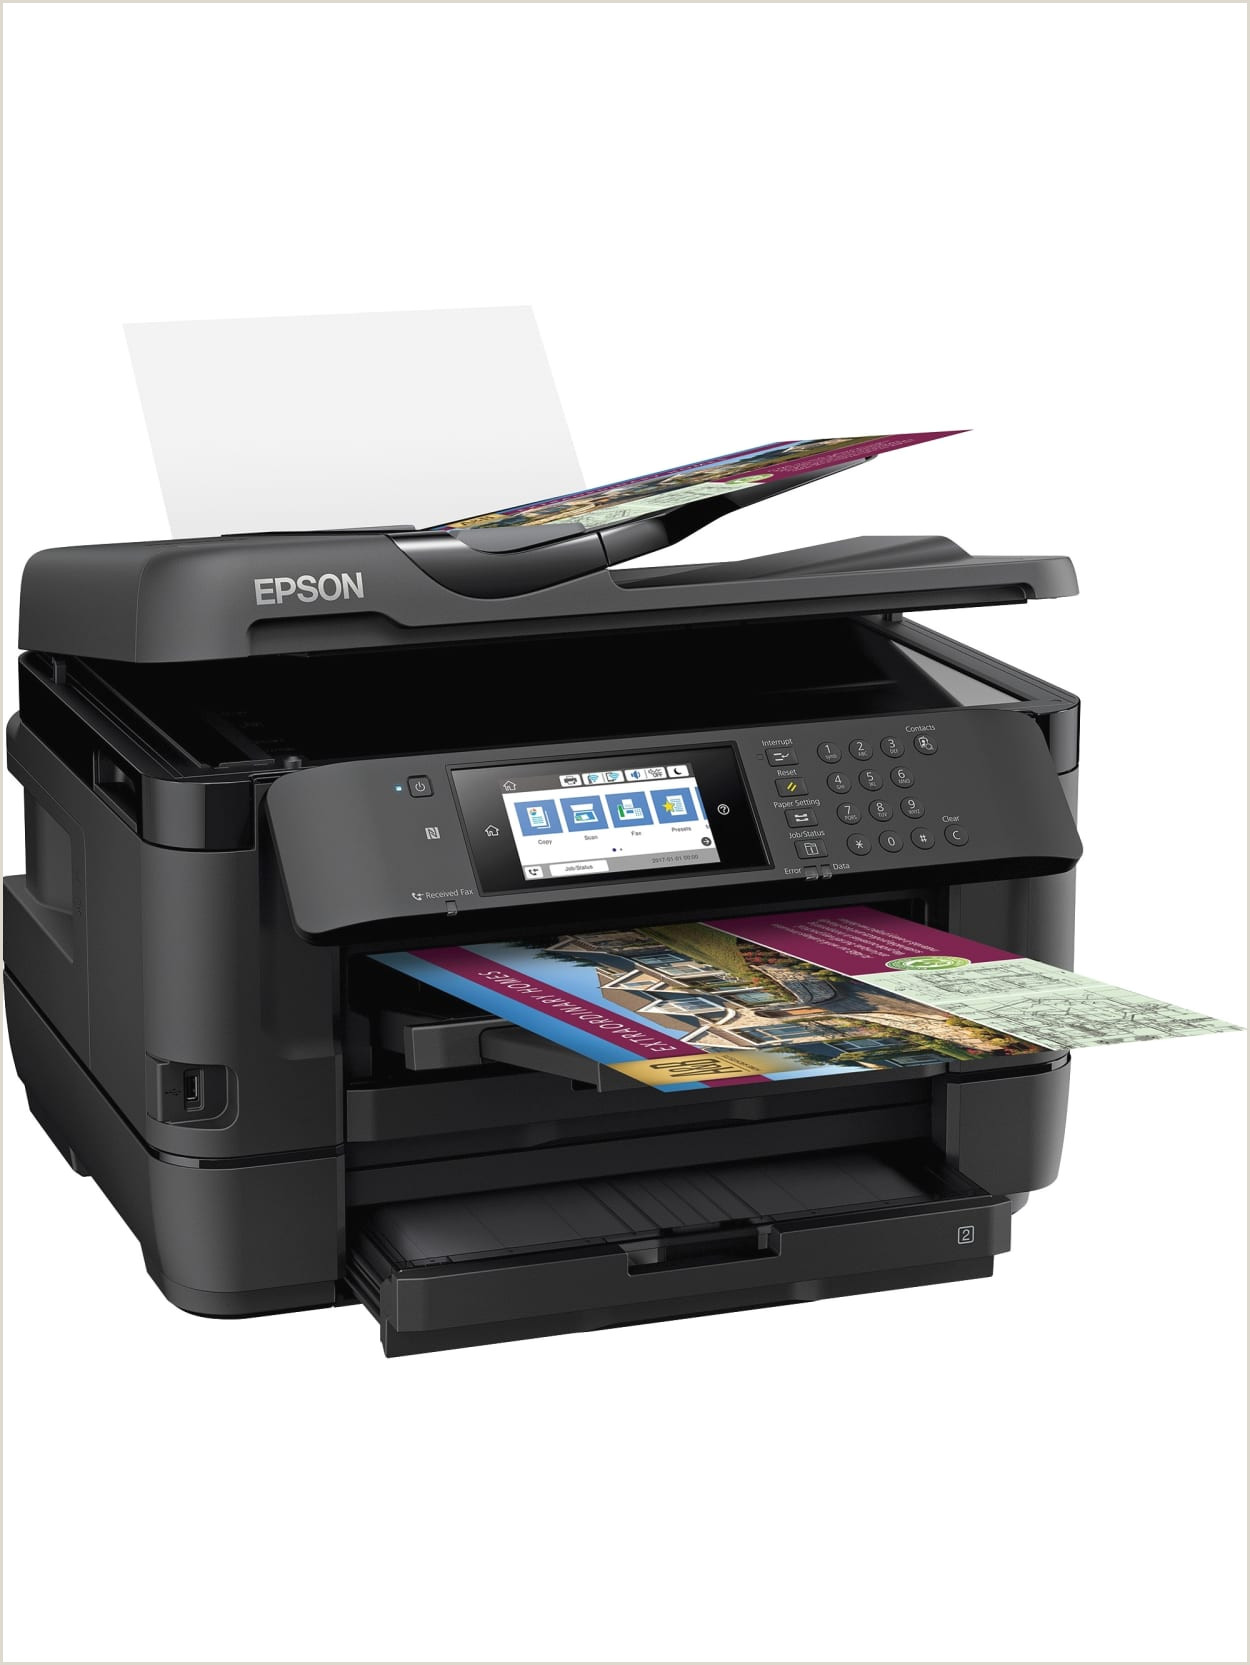 In Store Business Card Printing Epson Workforce Wf 7720 19 Wide Format Wireless Inkjet All